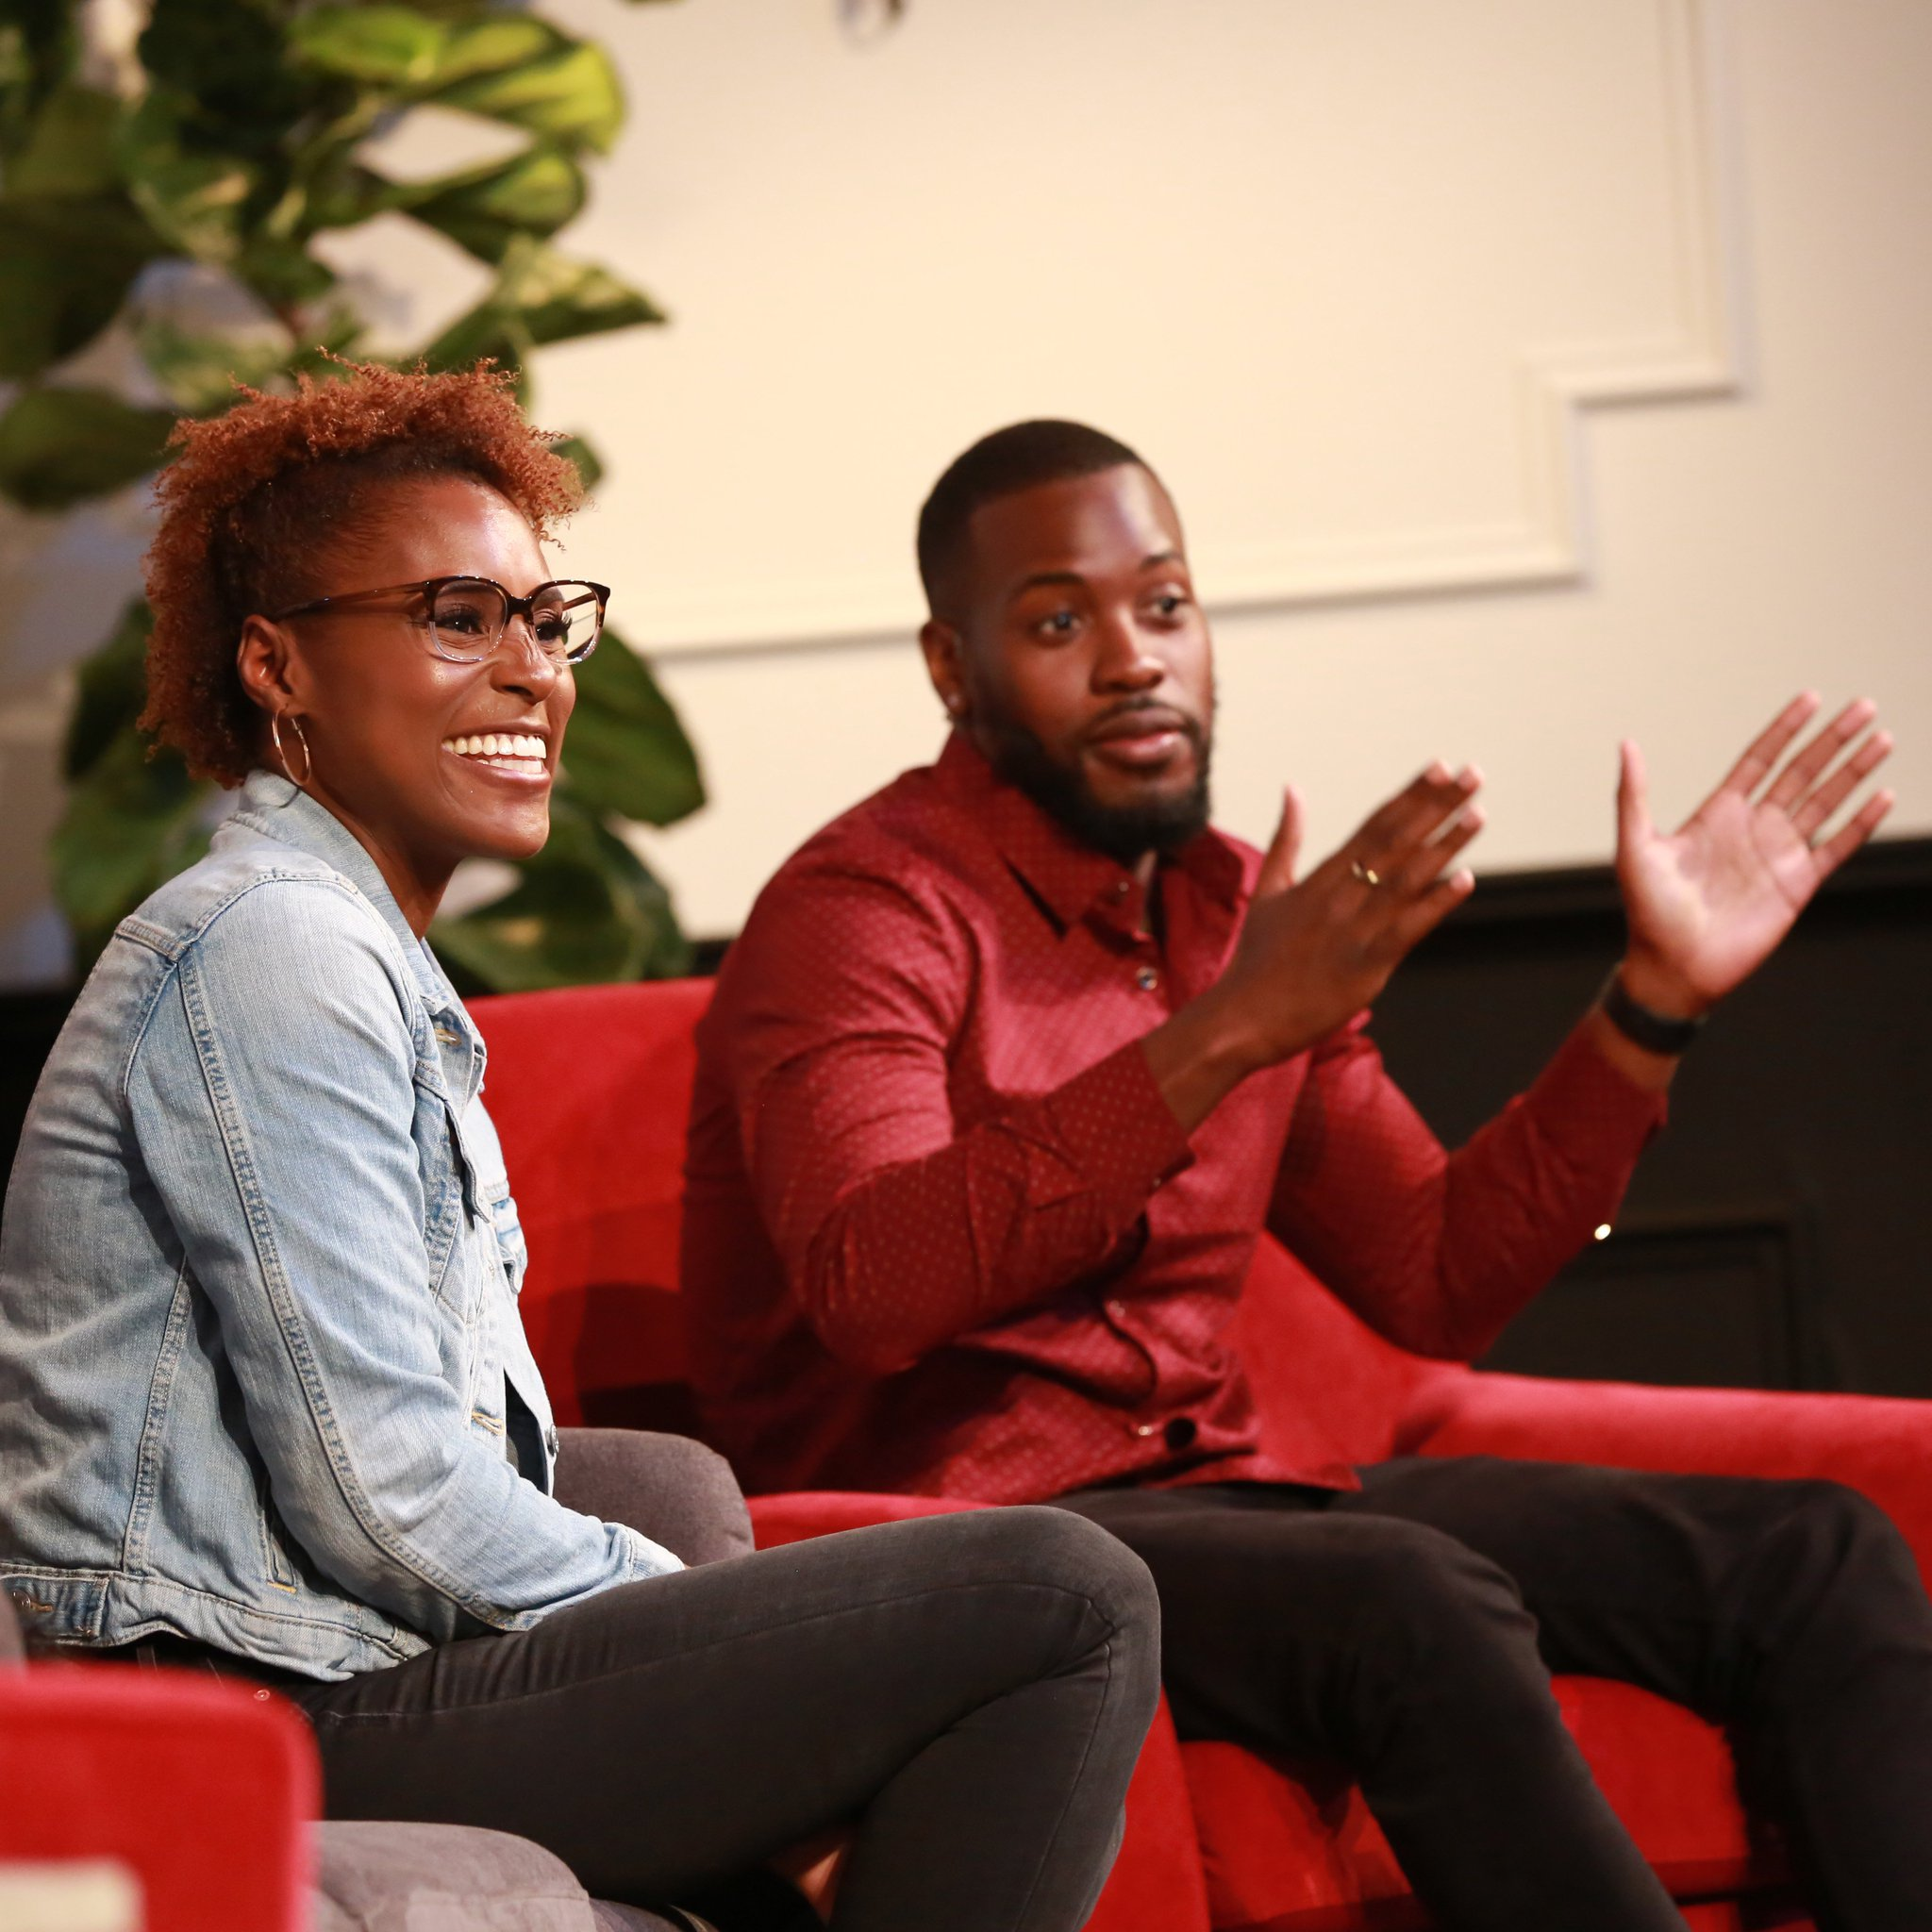 Star-struck from the incredible speakers at #YouTubeBlack Creator Summit! Thank you @IssaRae and @common �� https://t.co/IMjigBhX6i